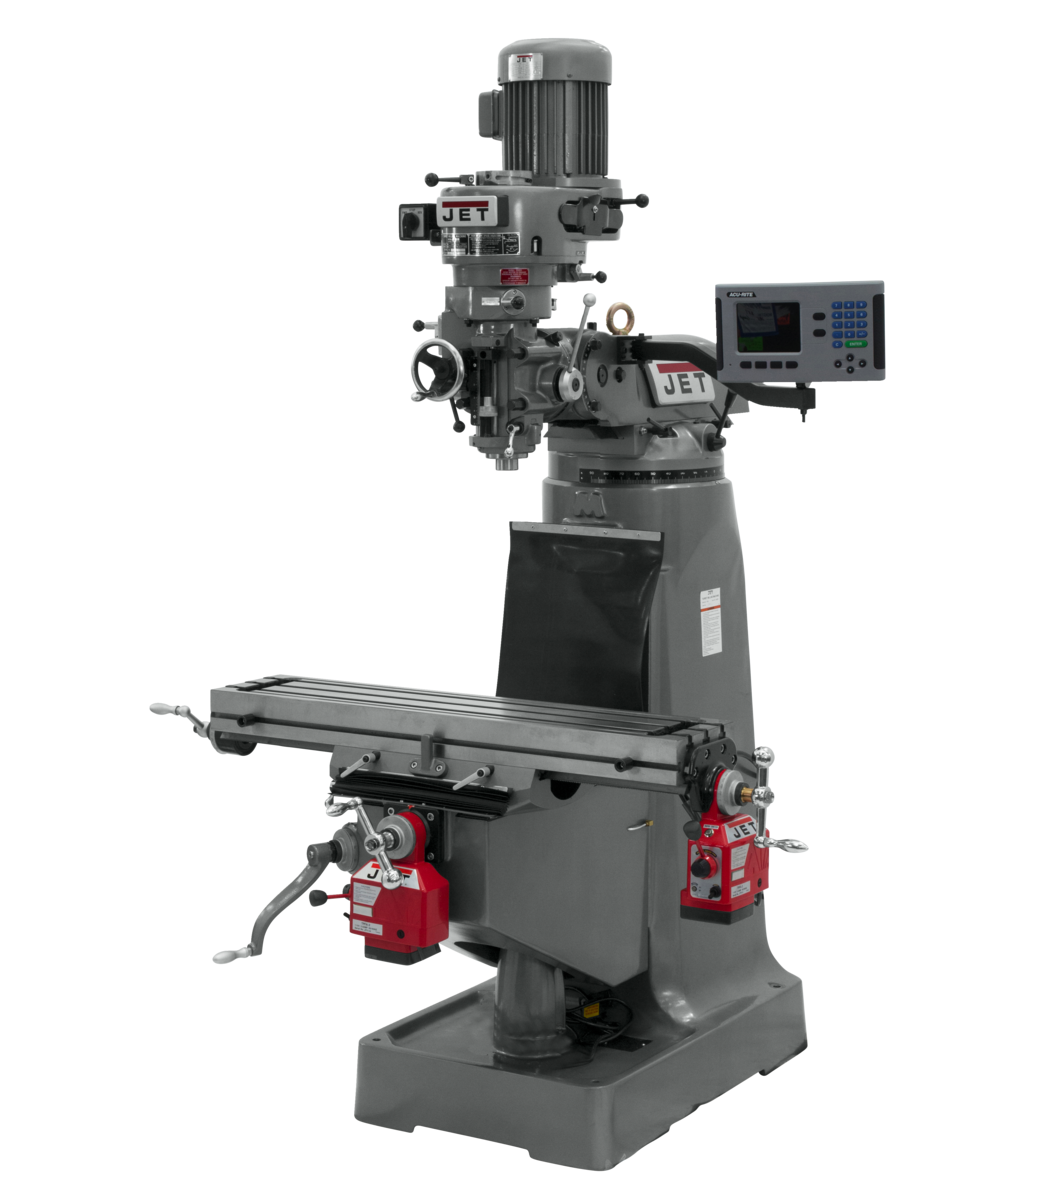 JTM-2 Mill With ACU-RITE 203 DRO and X and Y-Axis Powerfeeds